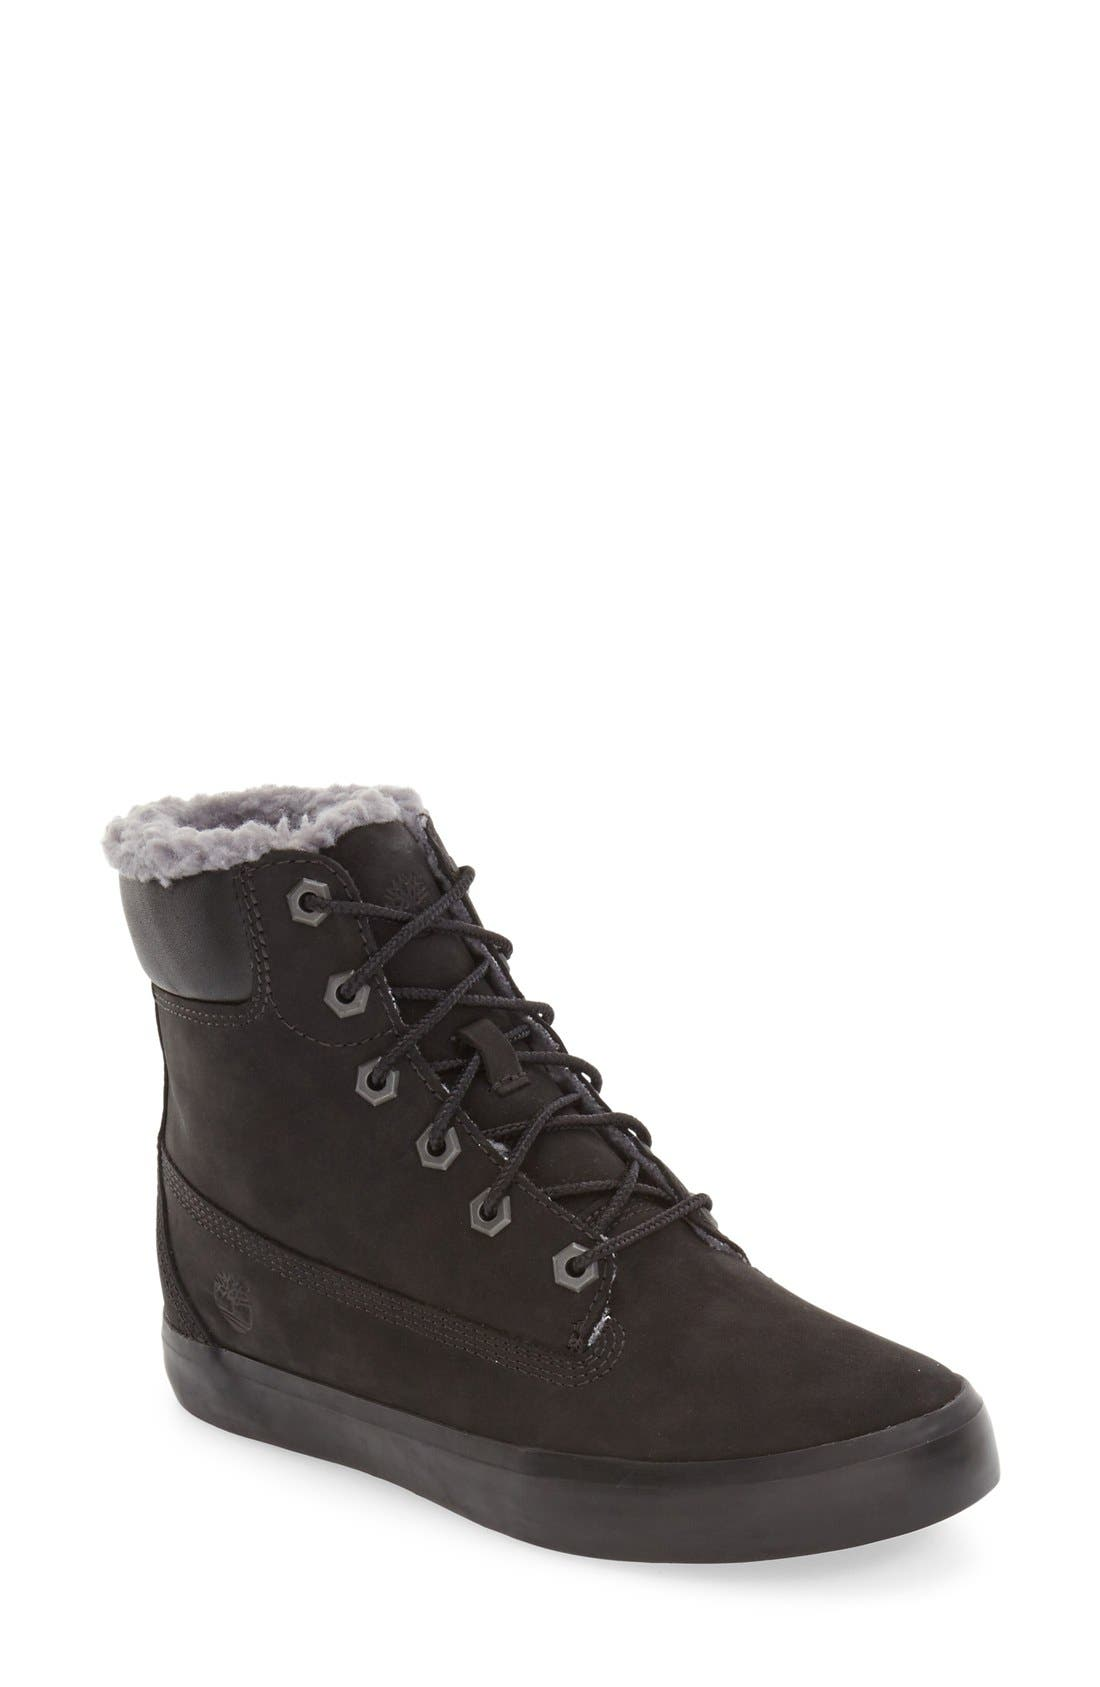 Main Image - Timberland Flannery Hidden Wedge Boot with Faux Fur Lining (Women)